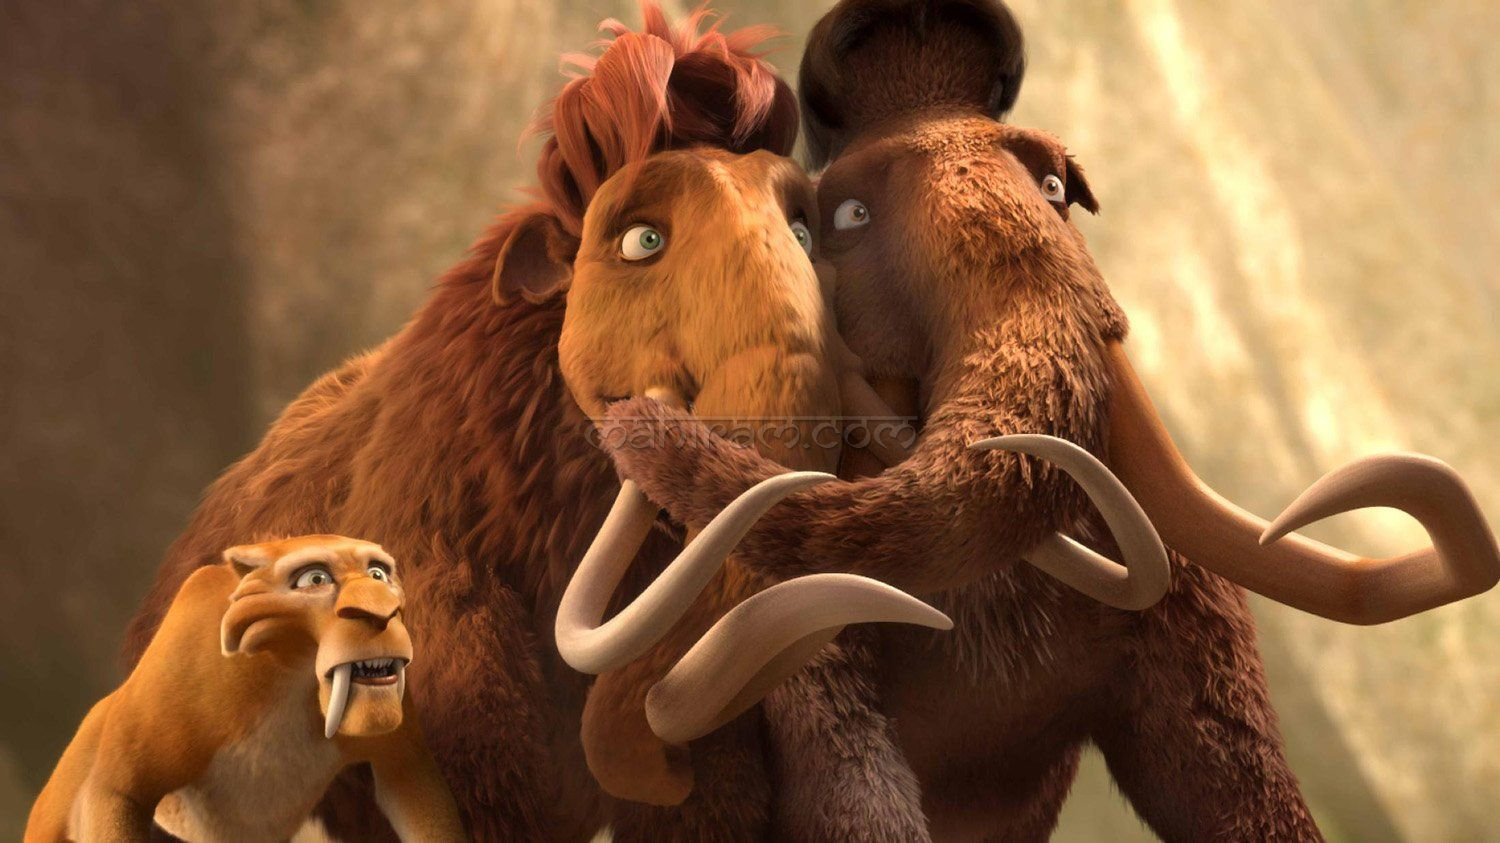 manny and ellie from ice age 2 | disney couples | pinterest | ice